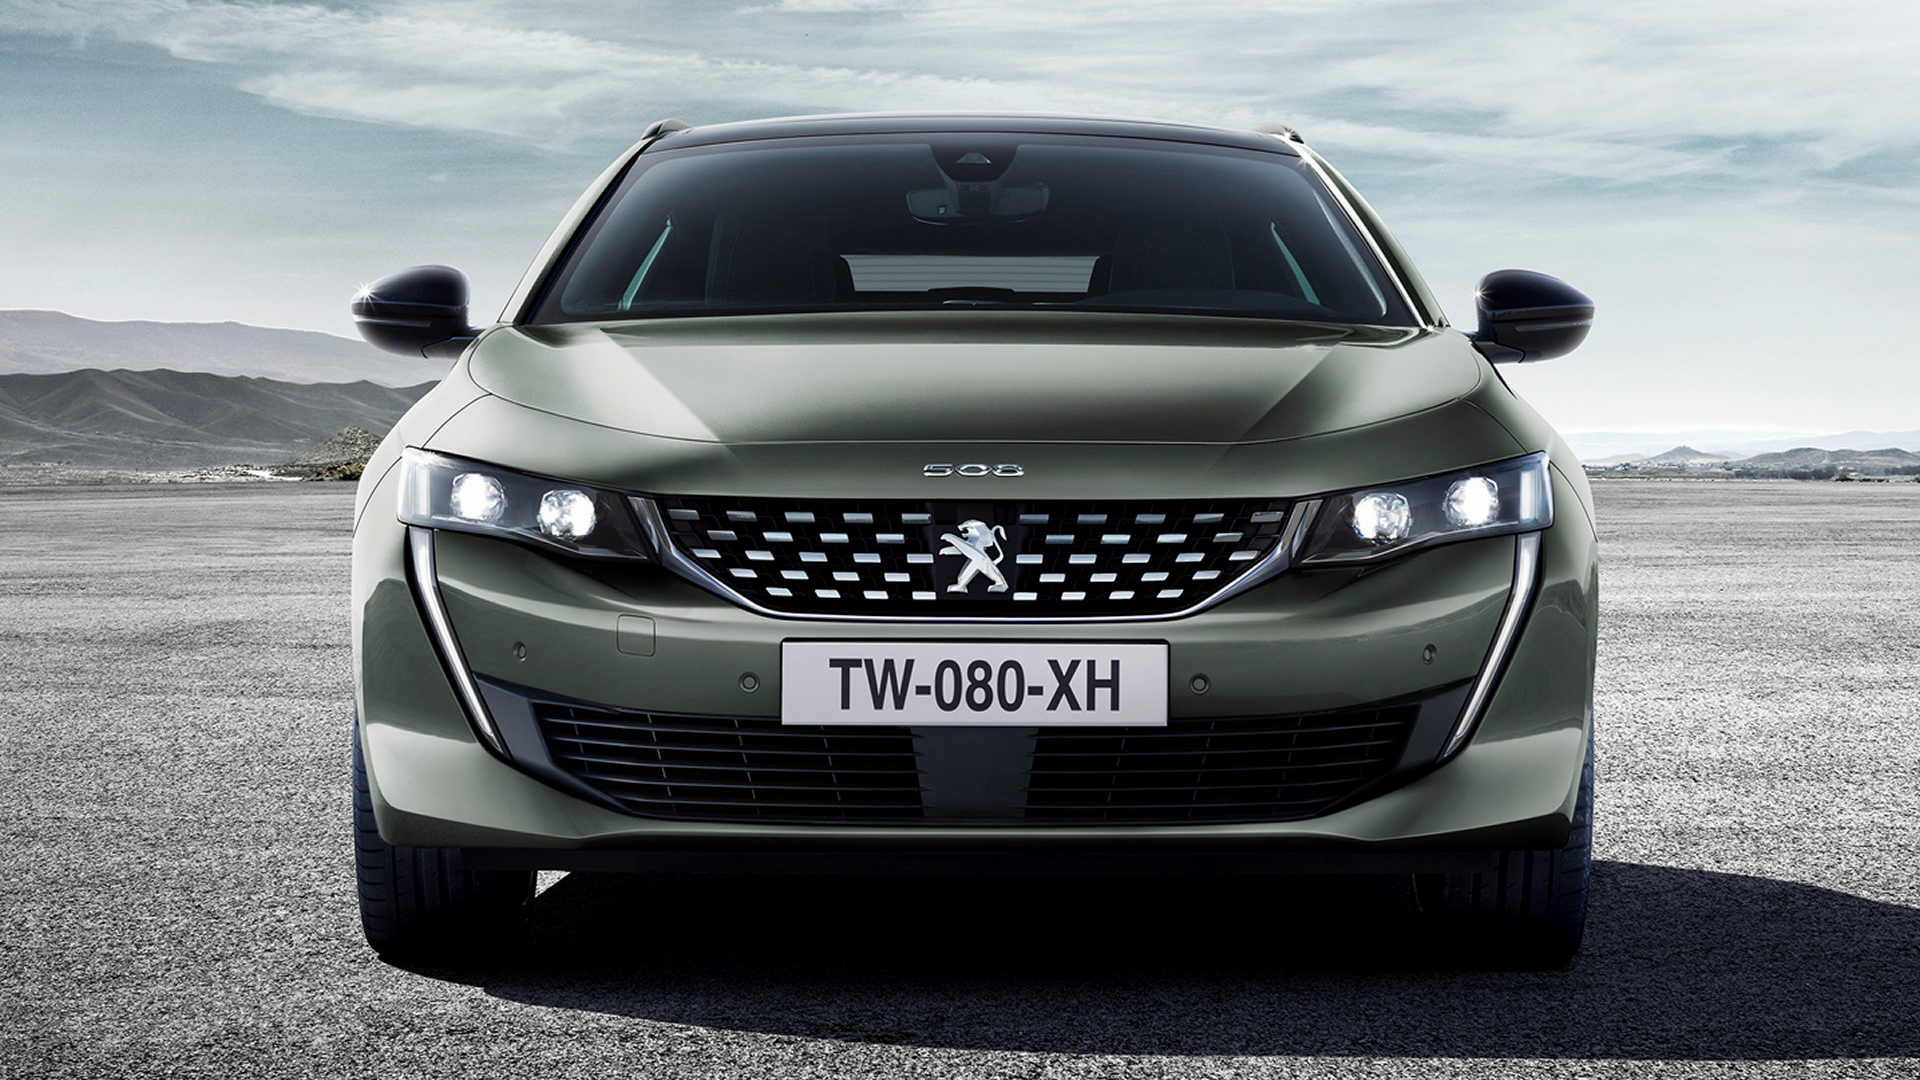 Free Download 2018 Peugeot 508 Sw Gt Wallpapers And Hd Images Car Pixel 1920x1200 For Your Desktop Mobile Tablet Explore 55 Peugeot 508 Wallpapers Peugeot 508 Wallpapers Peugeot 308 Wallpapers Peugeot Logo Wallpapers